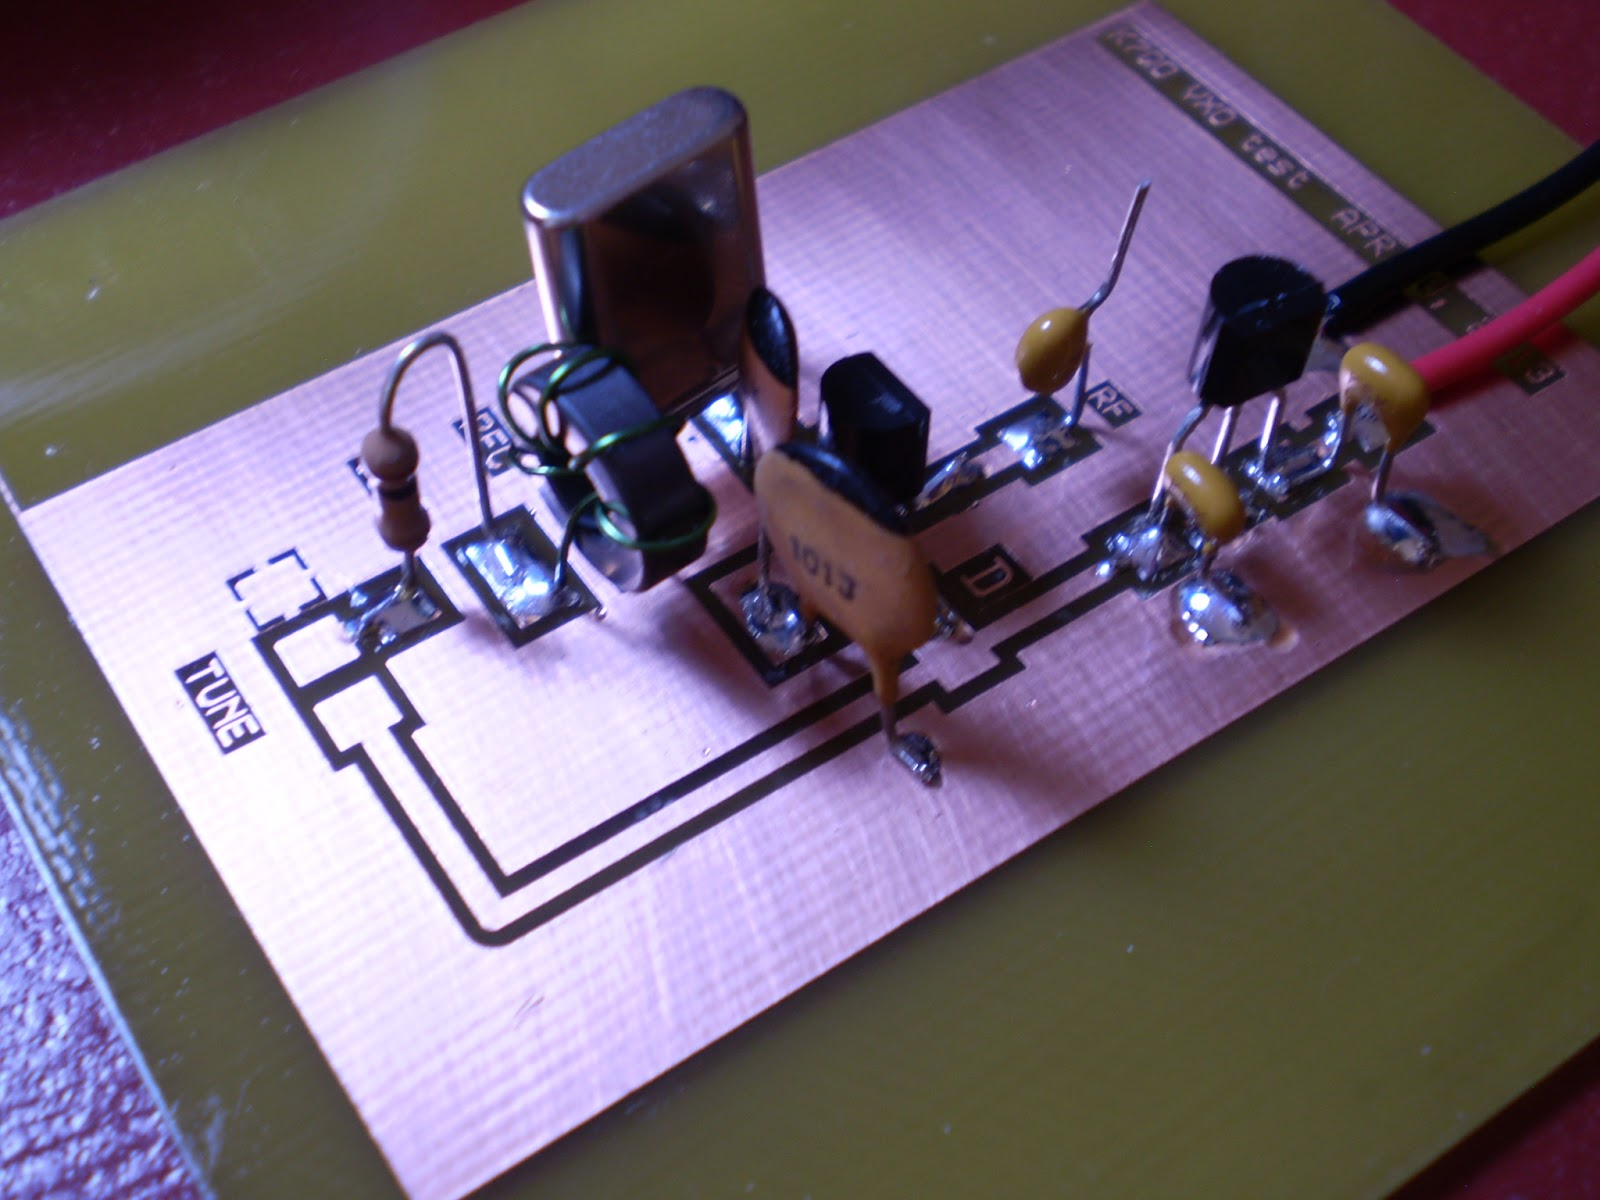 Soldersmoke Daily News April 2013 Analogue Radio Control By Sm0vpo Chuck Adams Muppet Construction Manhattan Ugly Professional Placement Experimental Technique